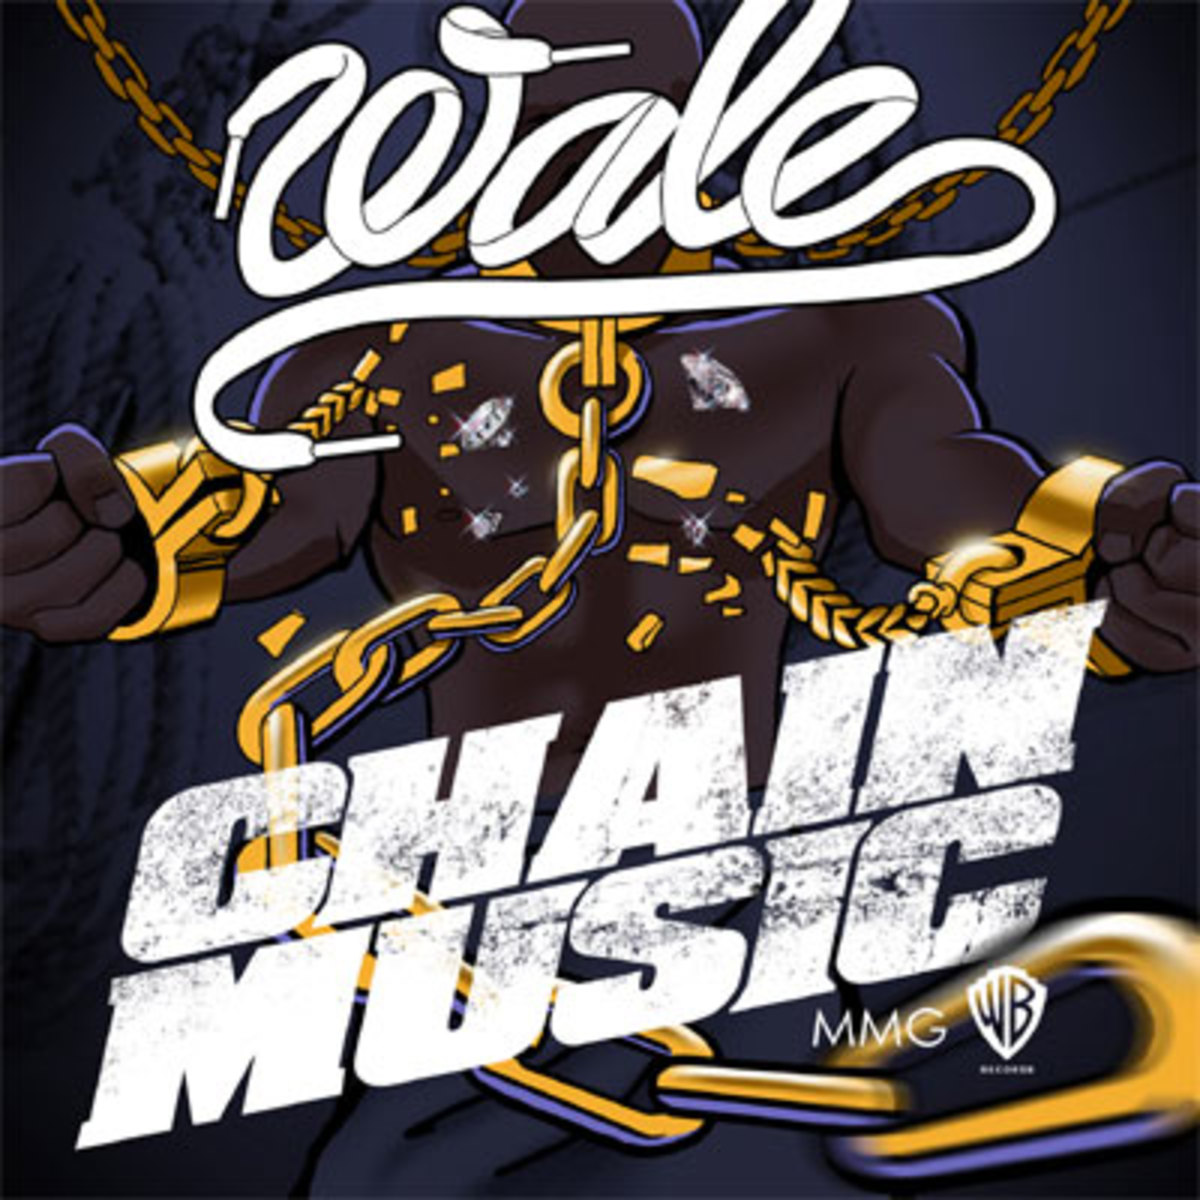 wale-chainmusic.jpg